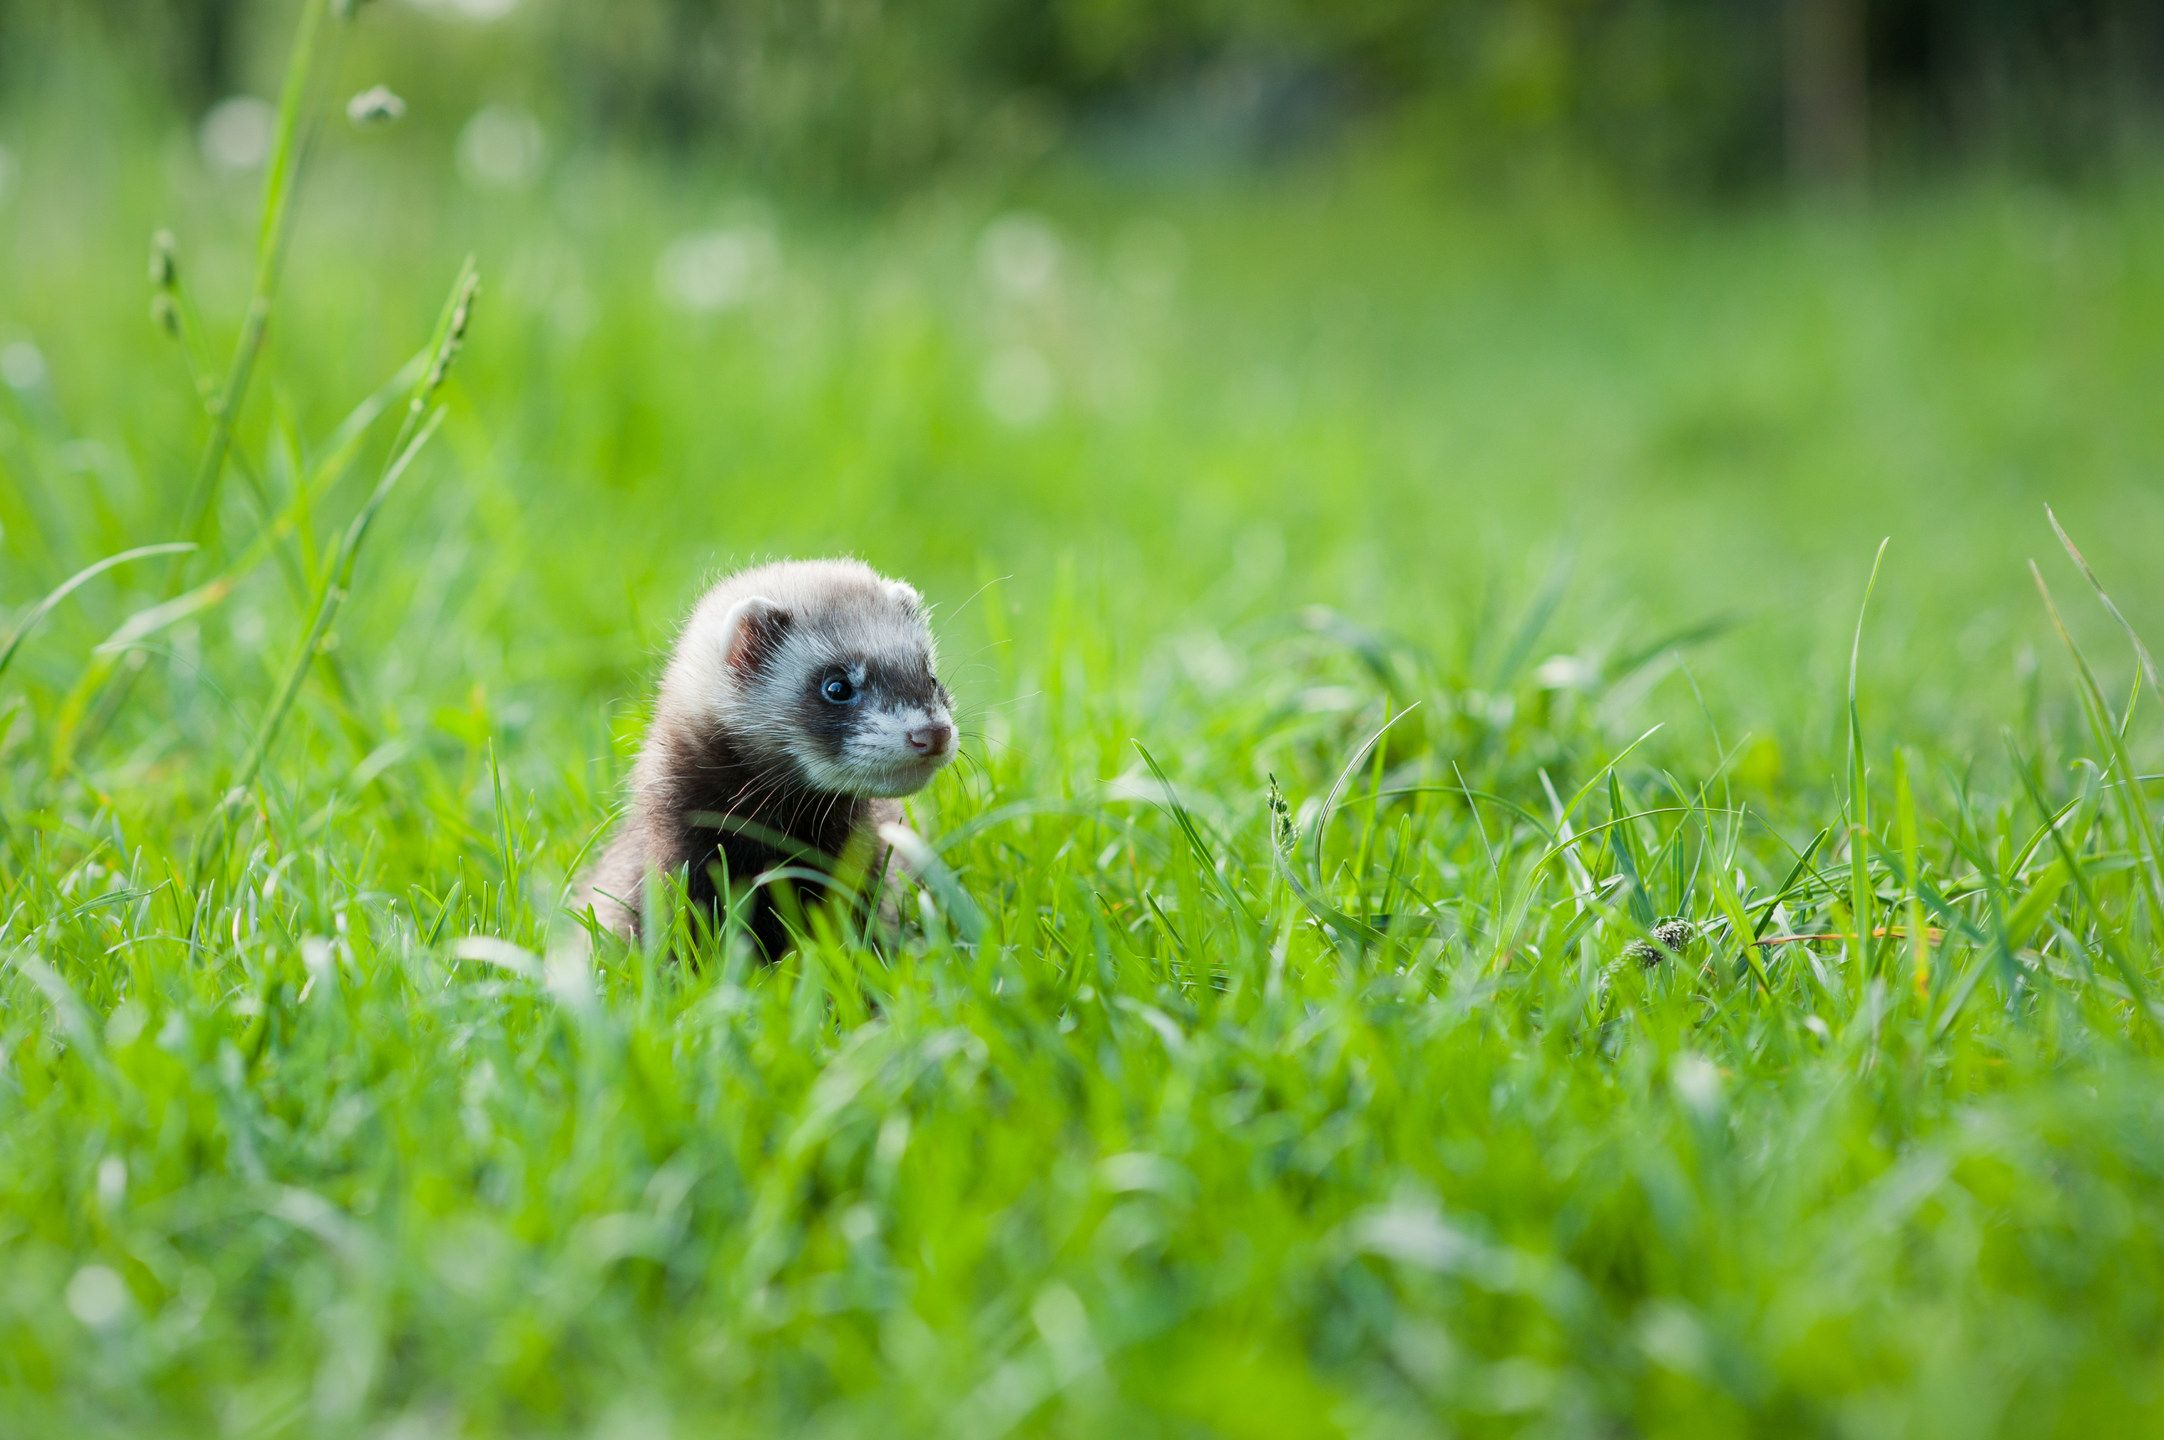 Ferret Hd Wallpapers New Tab Theme Install This Theme And Enjoy Hd Wallpapers Of Ferret Every Time You Open A New Tab Wallpaper Ferret Hd Wallpaper